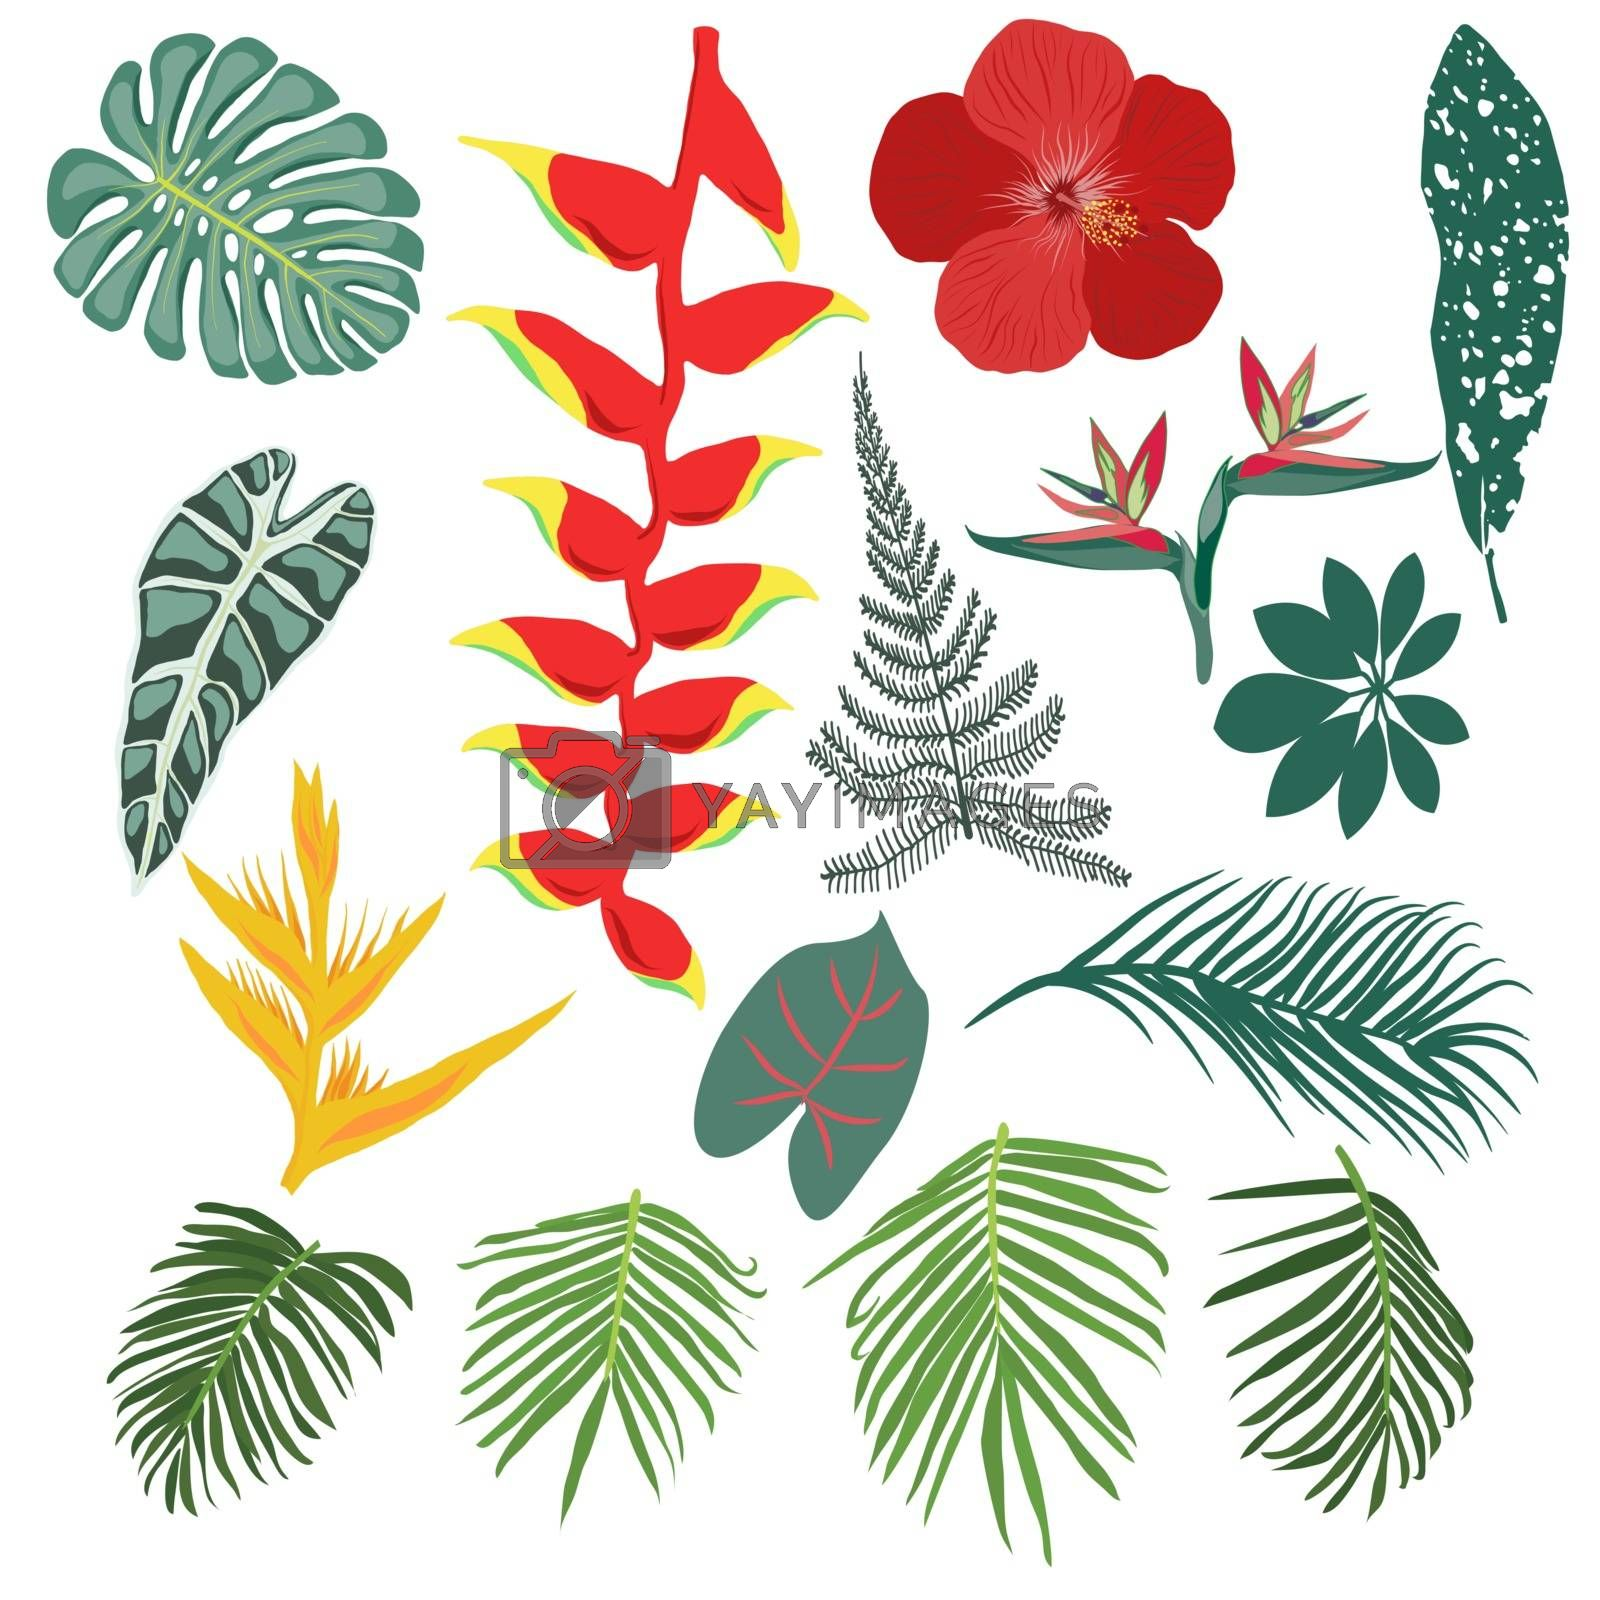 Tropical jungle leaves and flowers collection by Margolana